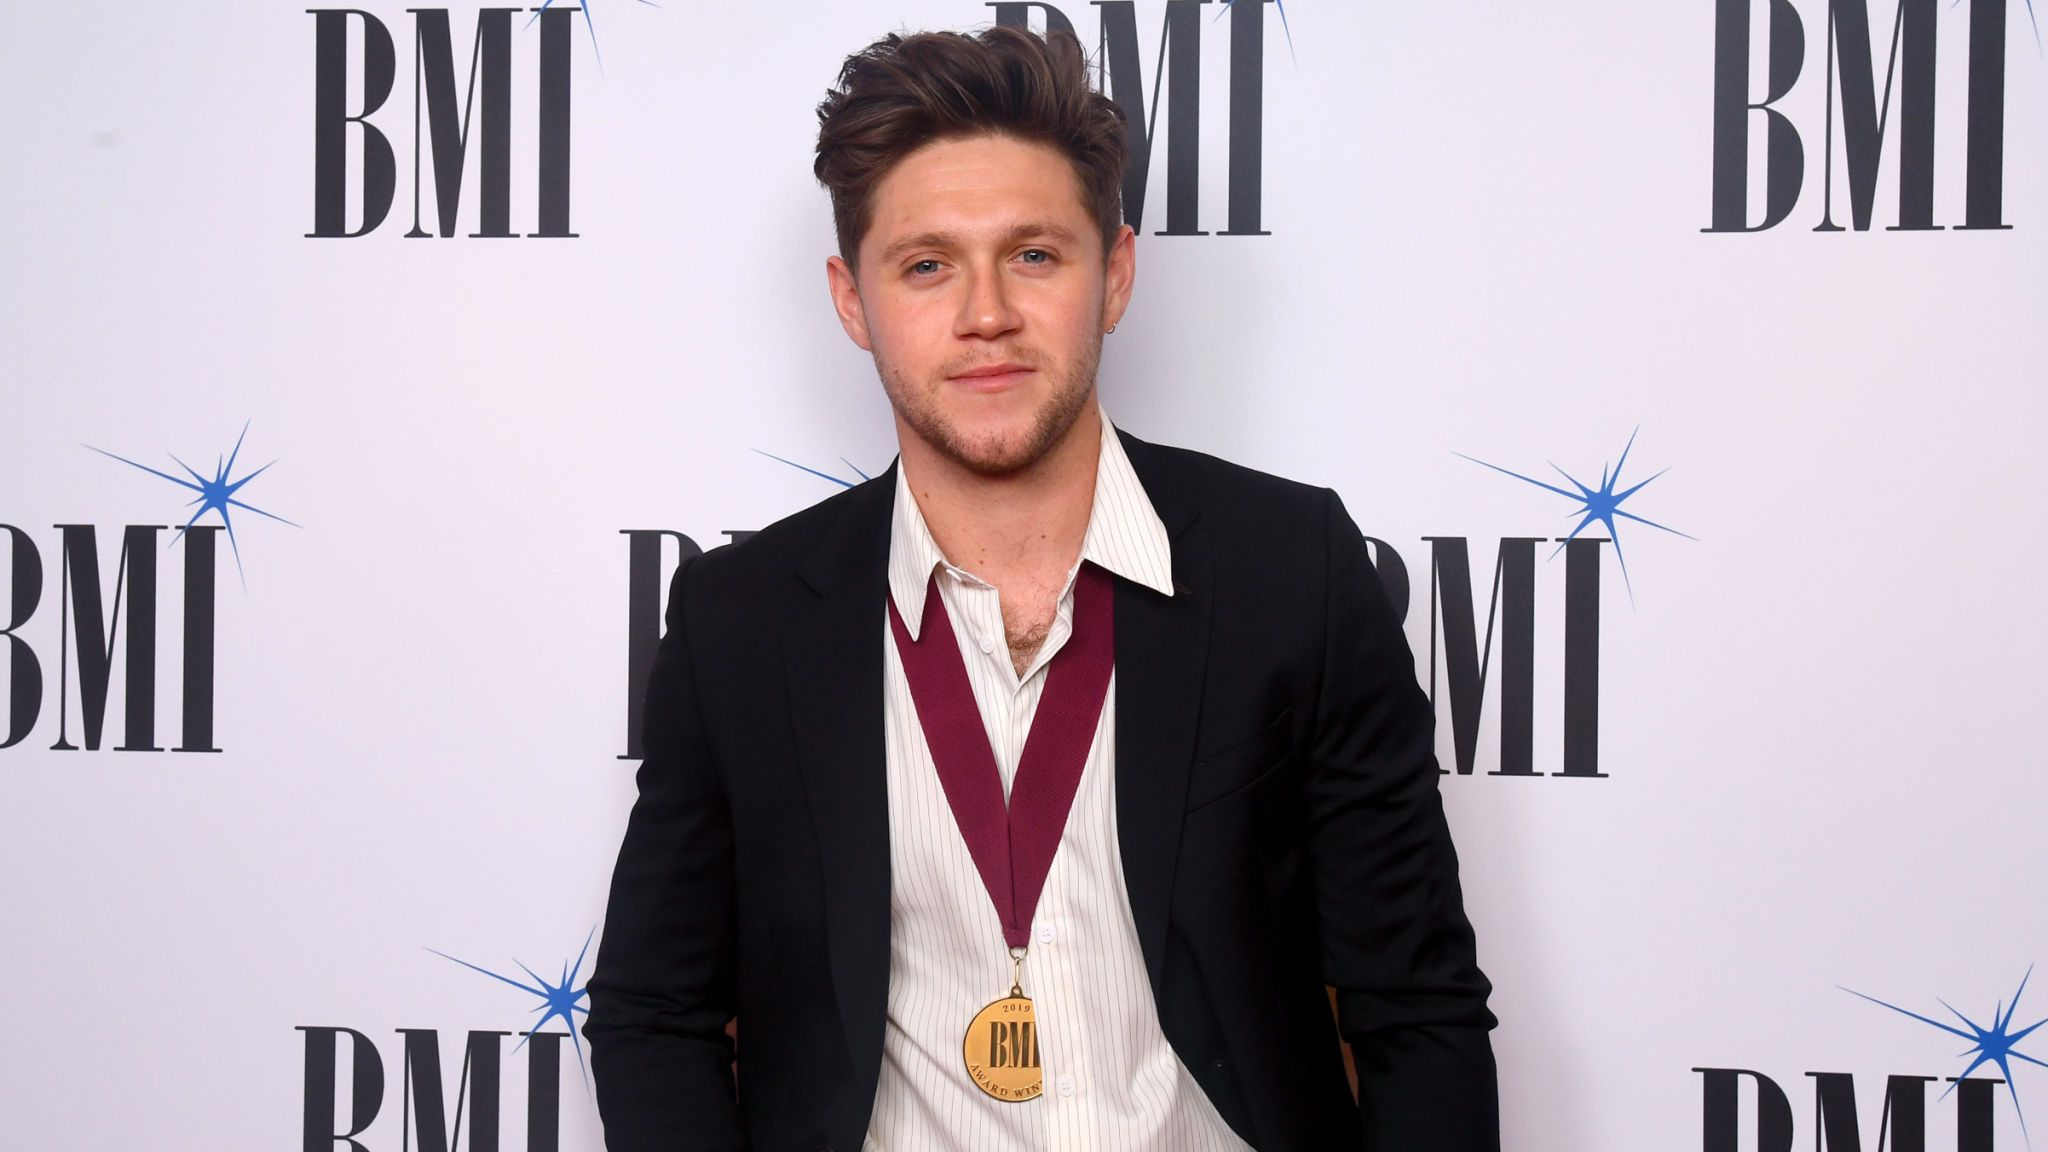 Niall Horan was among the winners at the BMI London Awards